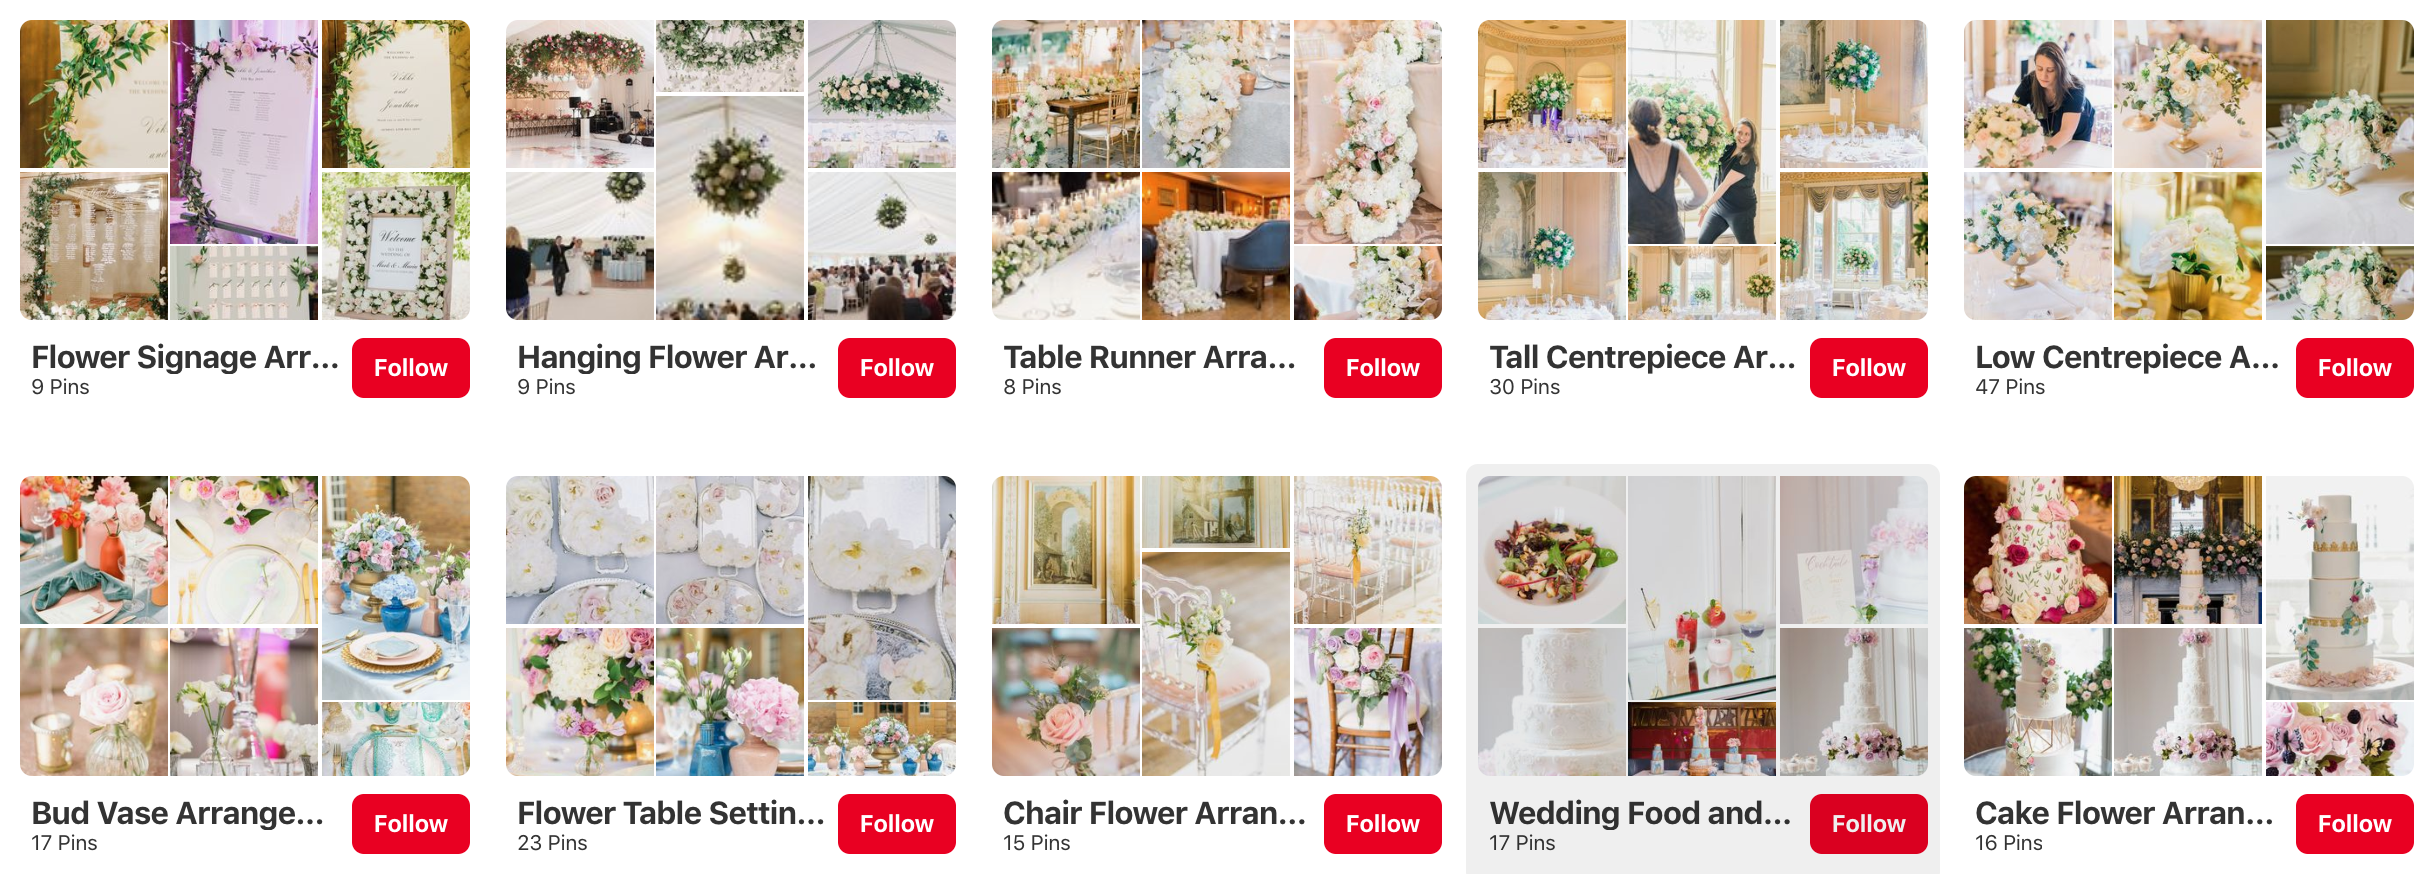 How To Use Pinterest For Wedding Flowers Inspiration